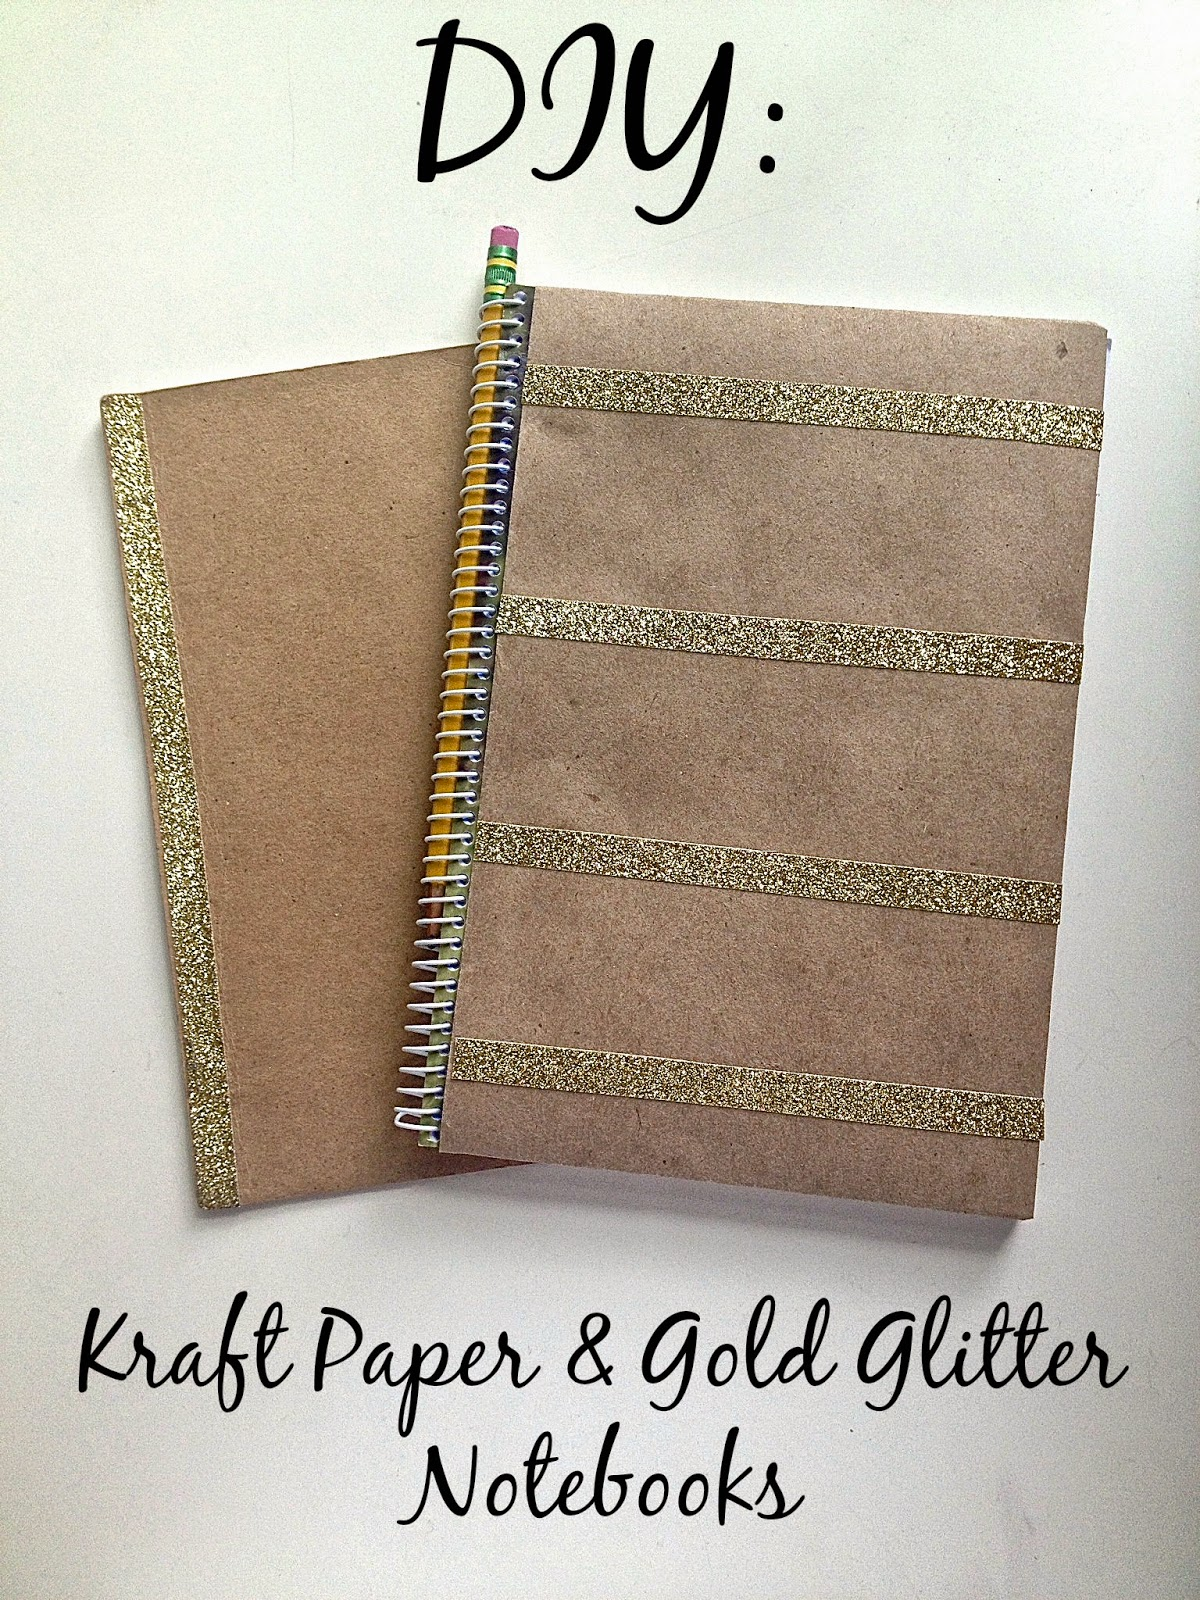 Diy glitter notebook cover - The Notebook